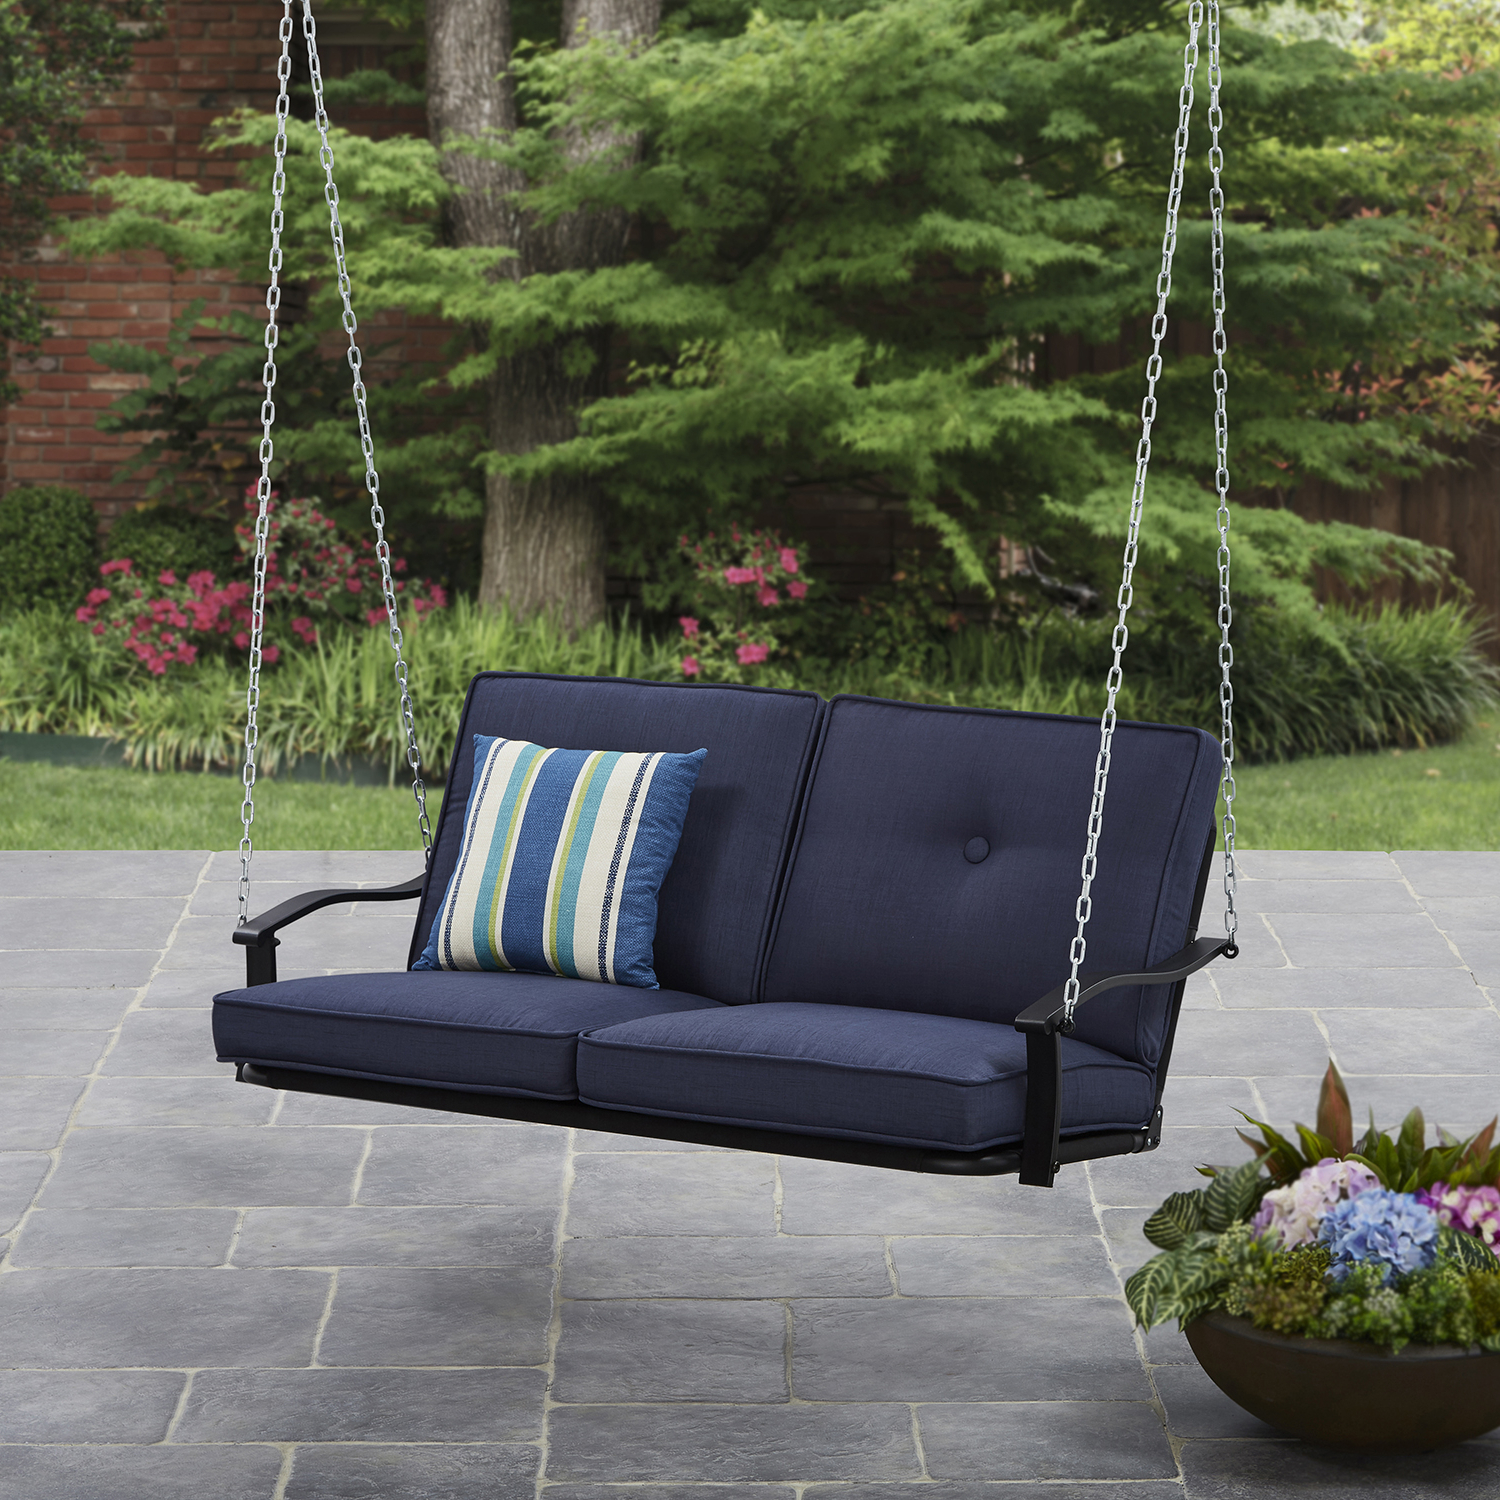 Most Recently Released Mainstays Belden Park Outdoor Porch Swing With Cushion Within Vineyard Porch Swings (View 25 of 25)